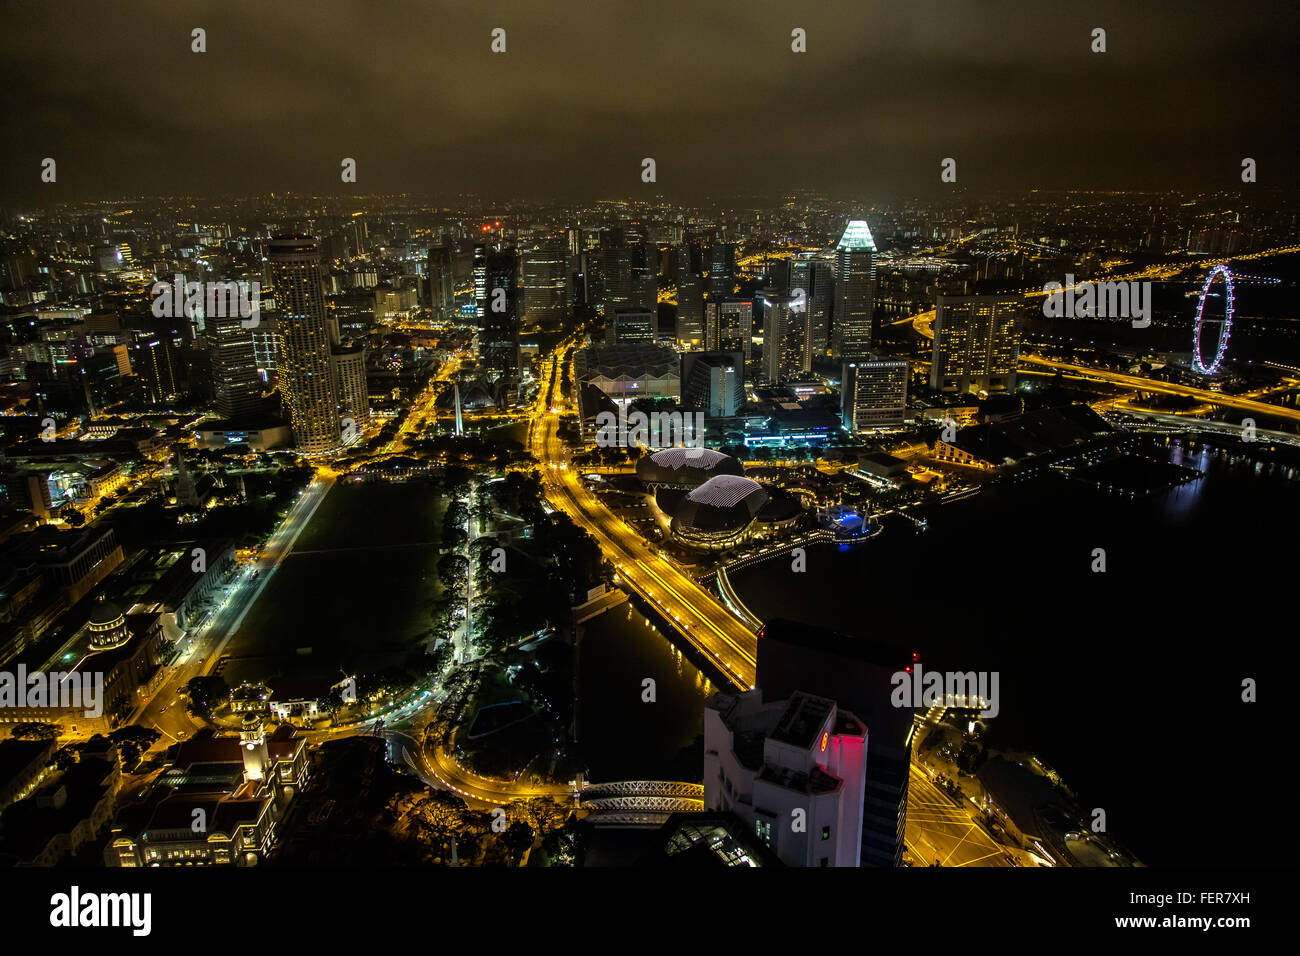 Aerial View Of Illuminated Cityscape Against Sky At Night - Stock Image